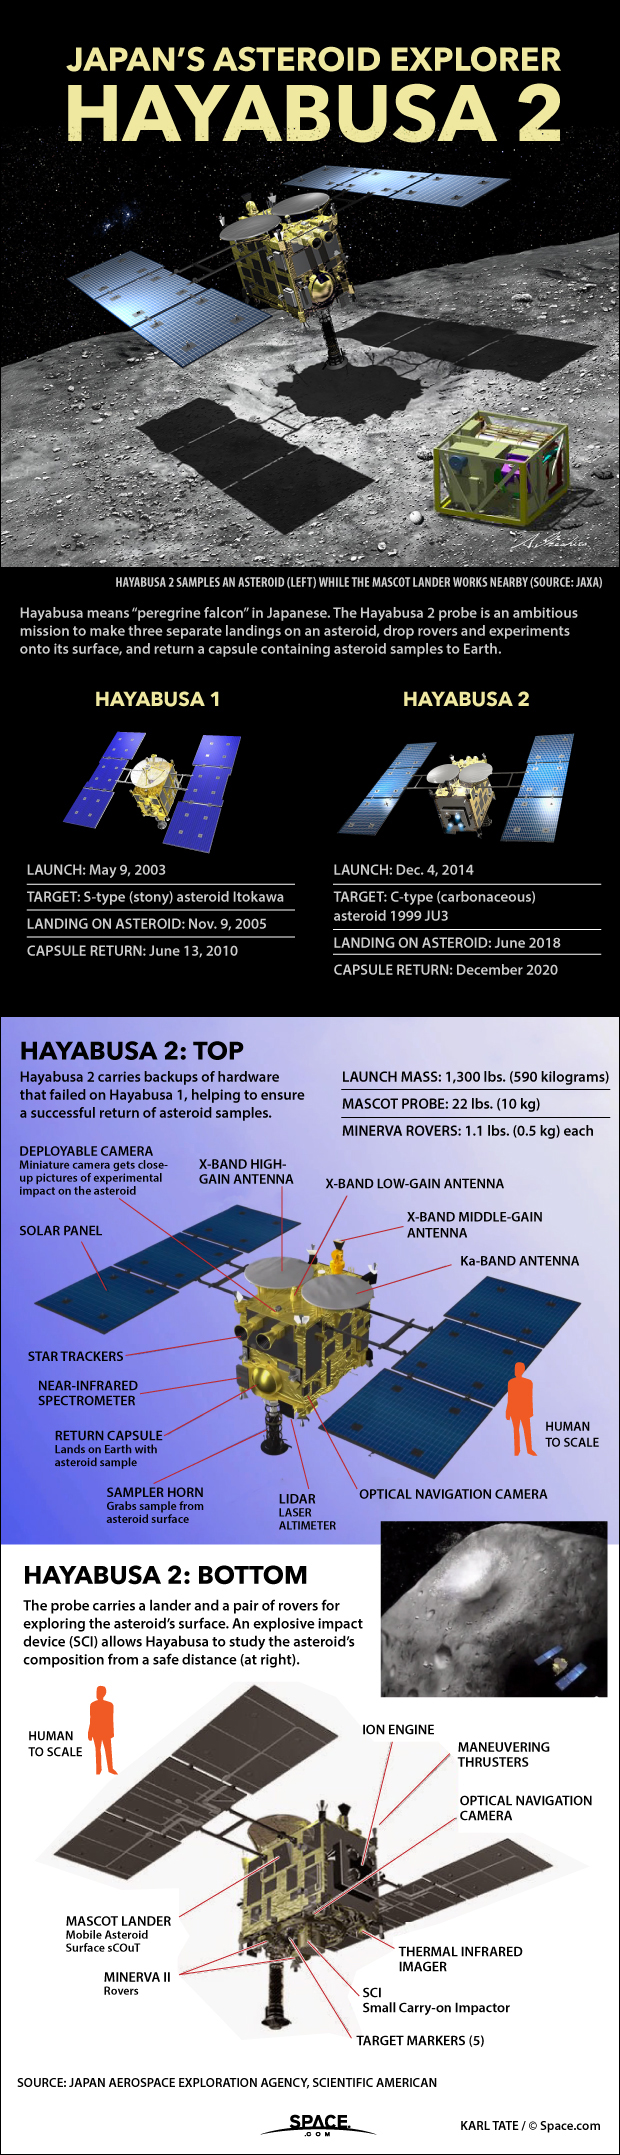 Japan's Hayabusa2 Asteroid Sample-Return Mission Explained (Infographic)